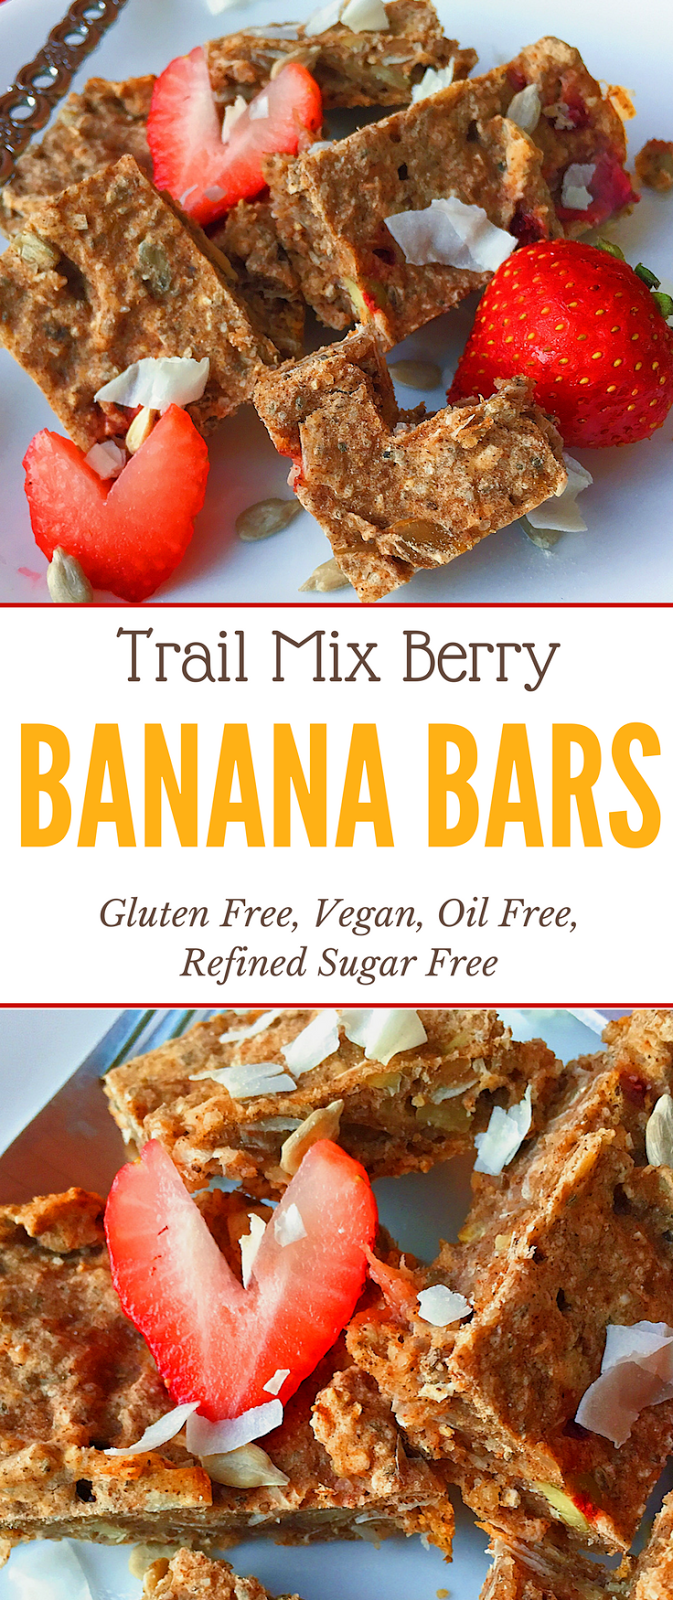 Gluten Free Trail Mix Berry Banana Bars (Vegan, Refined Sugar Free)